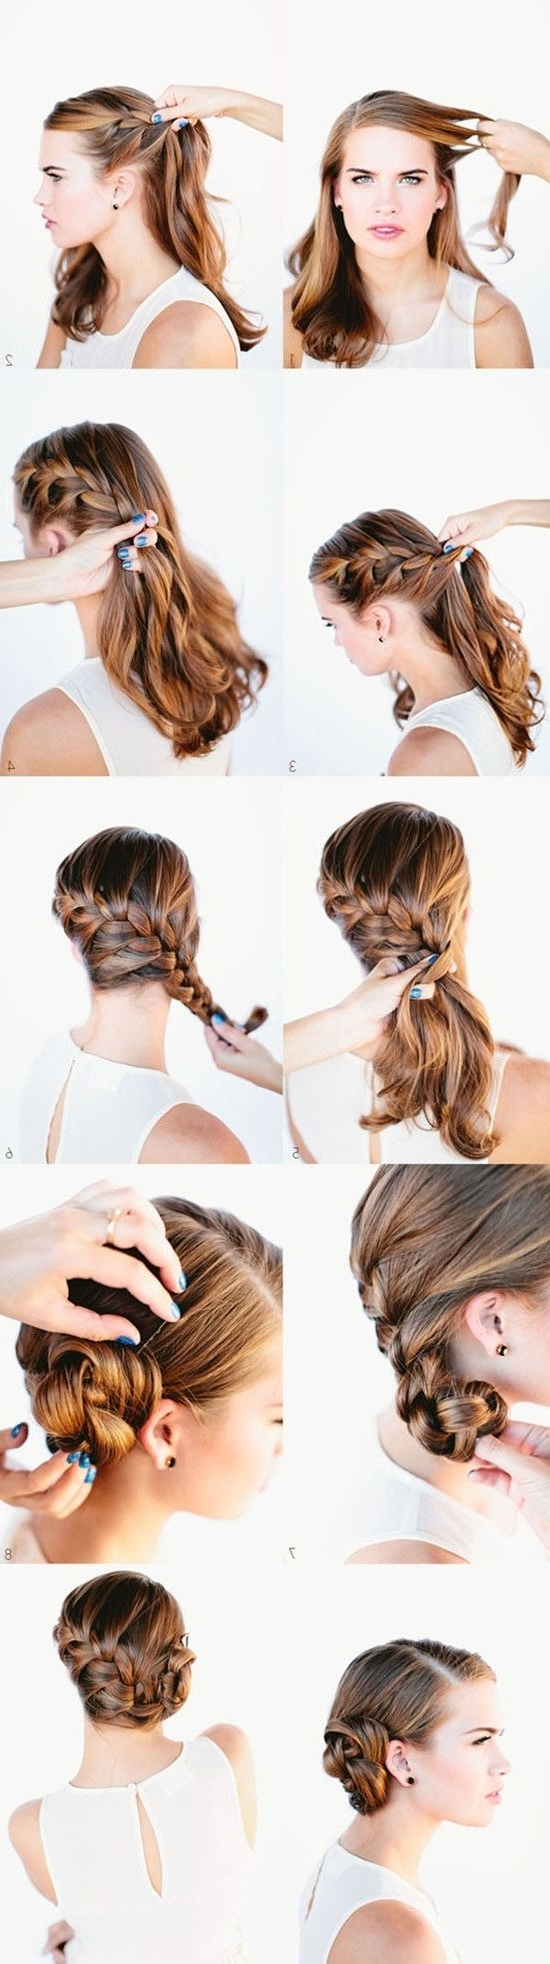 Newest Wedding Hairstyles For Short Hair With Extensions Throughout Real Best 6 Wedding Hairstyle Tutorial With 20 Inch Hair Extensions (View 7 of 15)